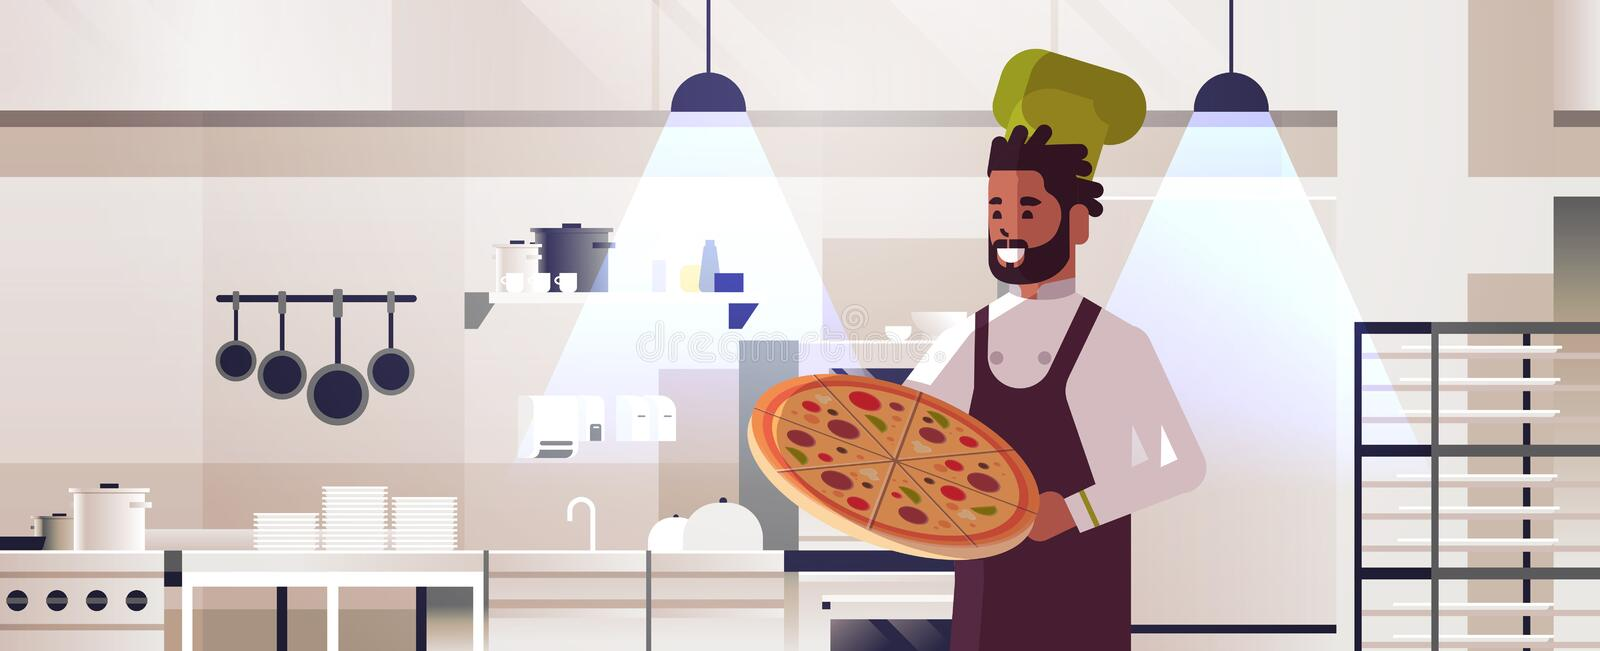 Male professional chef cook holding fresh pizza african american man in uniform cooking food concept modern restaurant. Kitchen interior flat portrait royalty free illustration